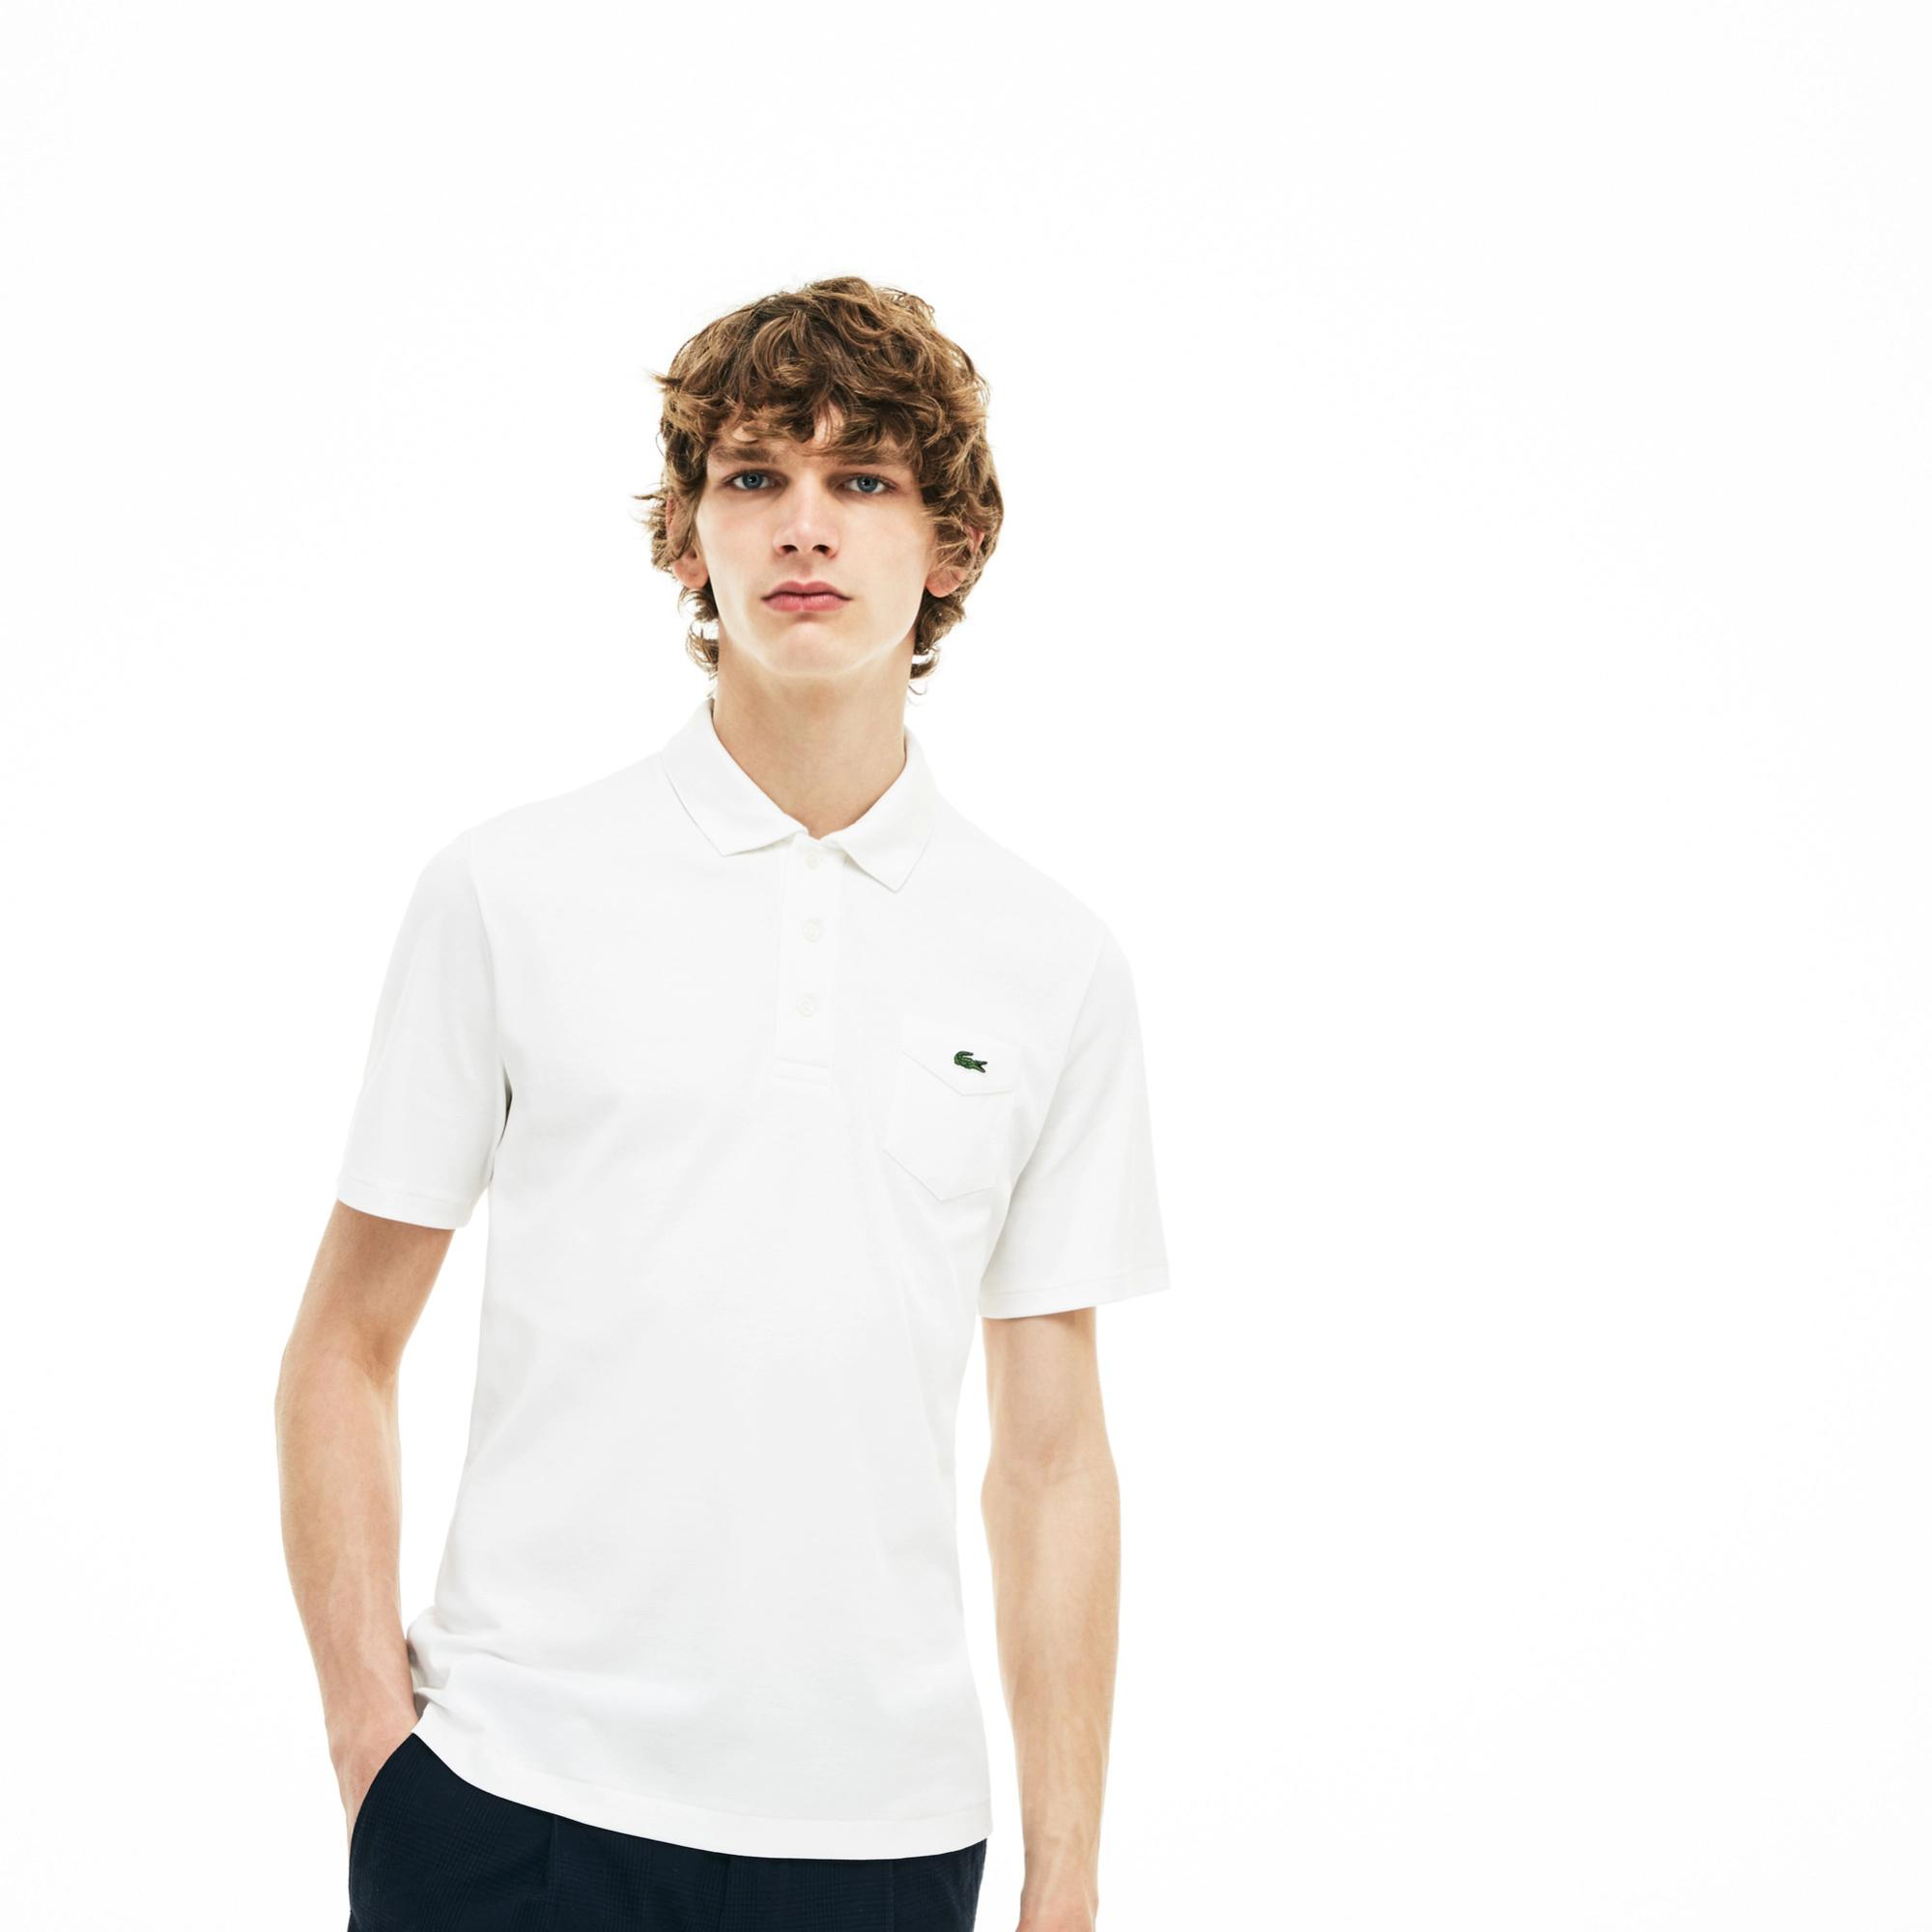 Lacoste Unisex 1930s Revival Lacoste 85th Anniversary Limited Edition Interlock Polo Shirt